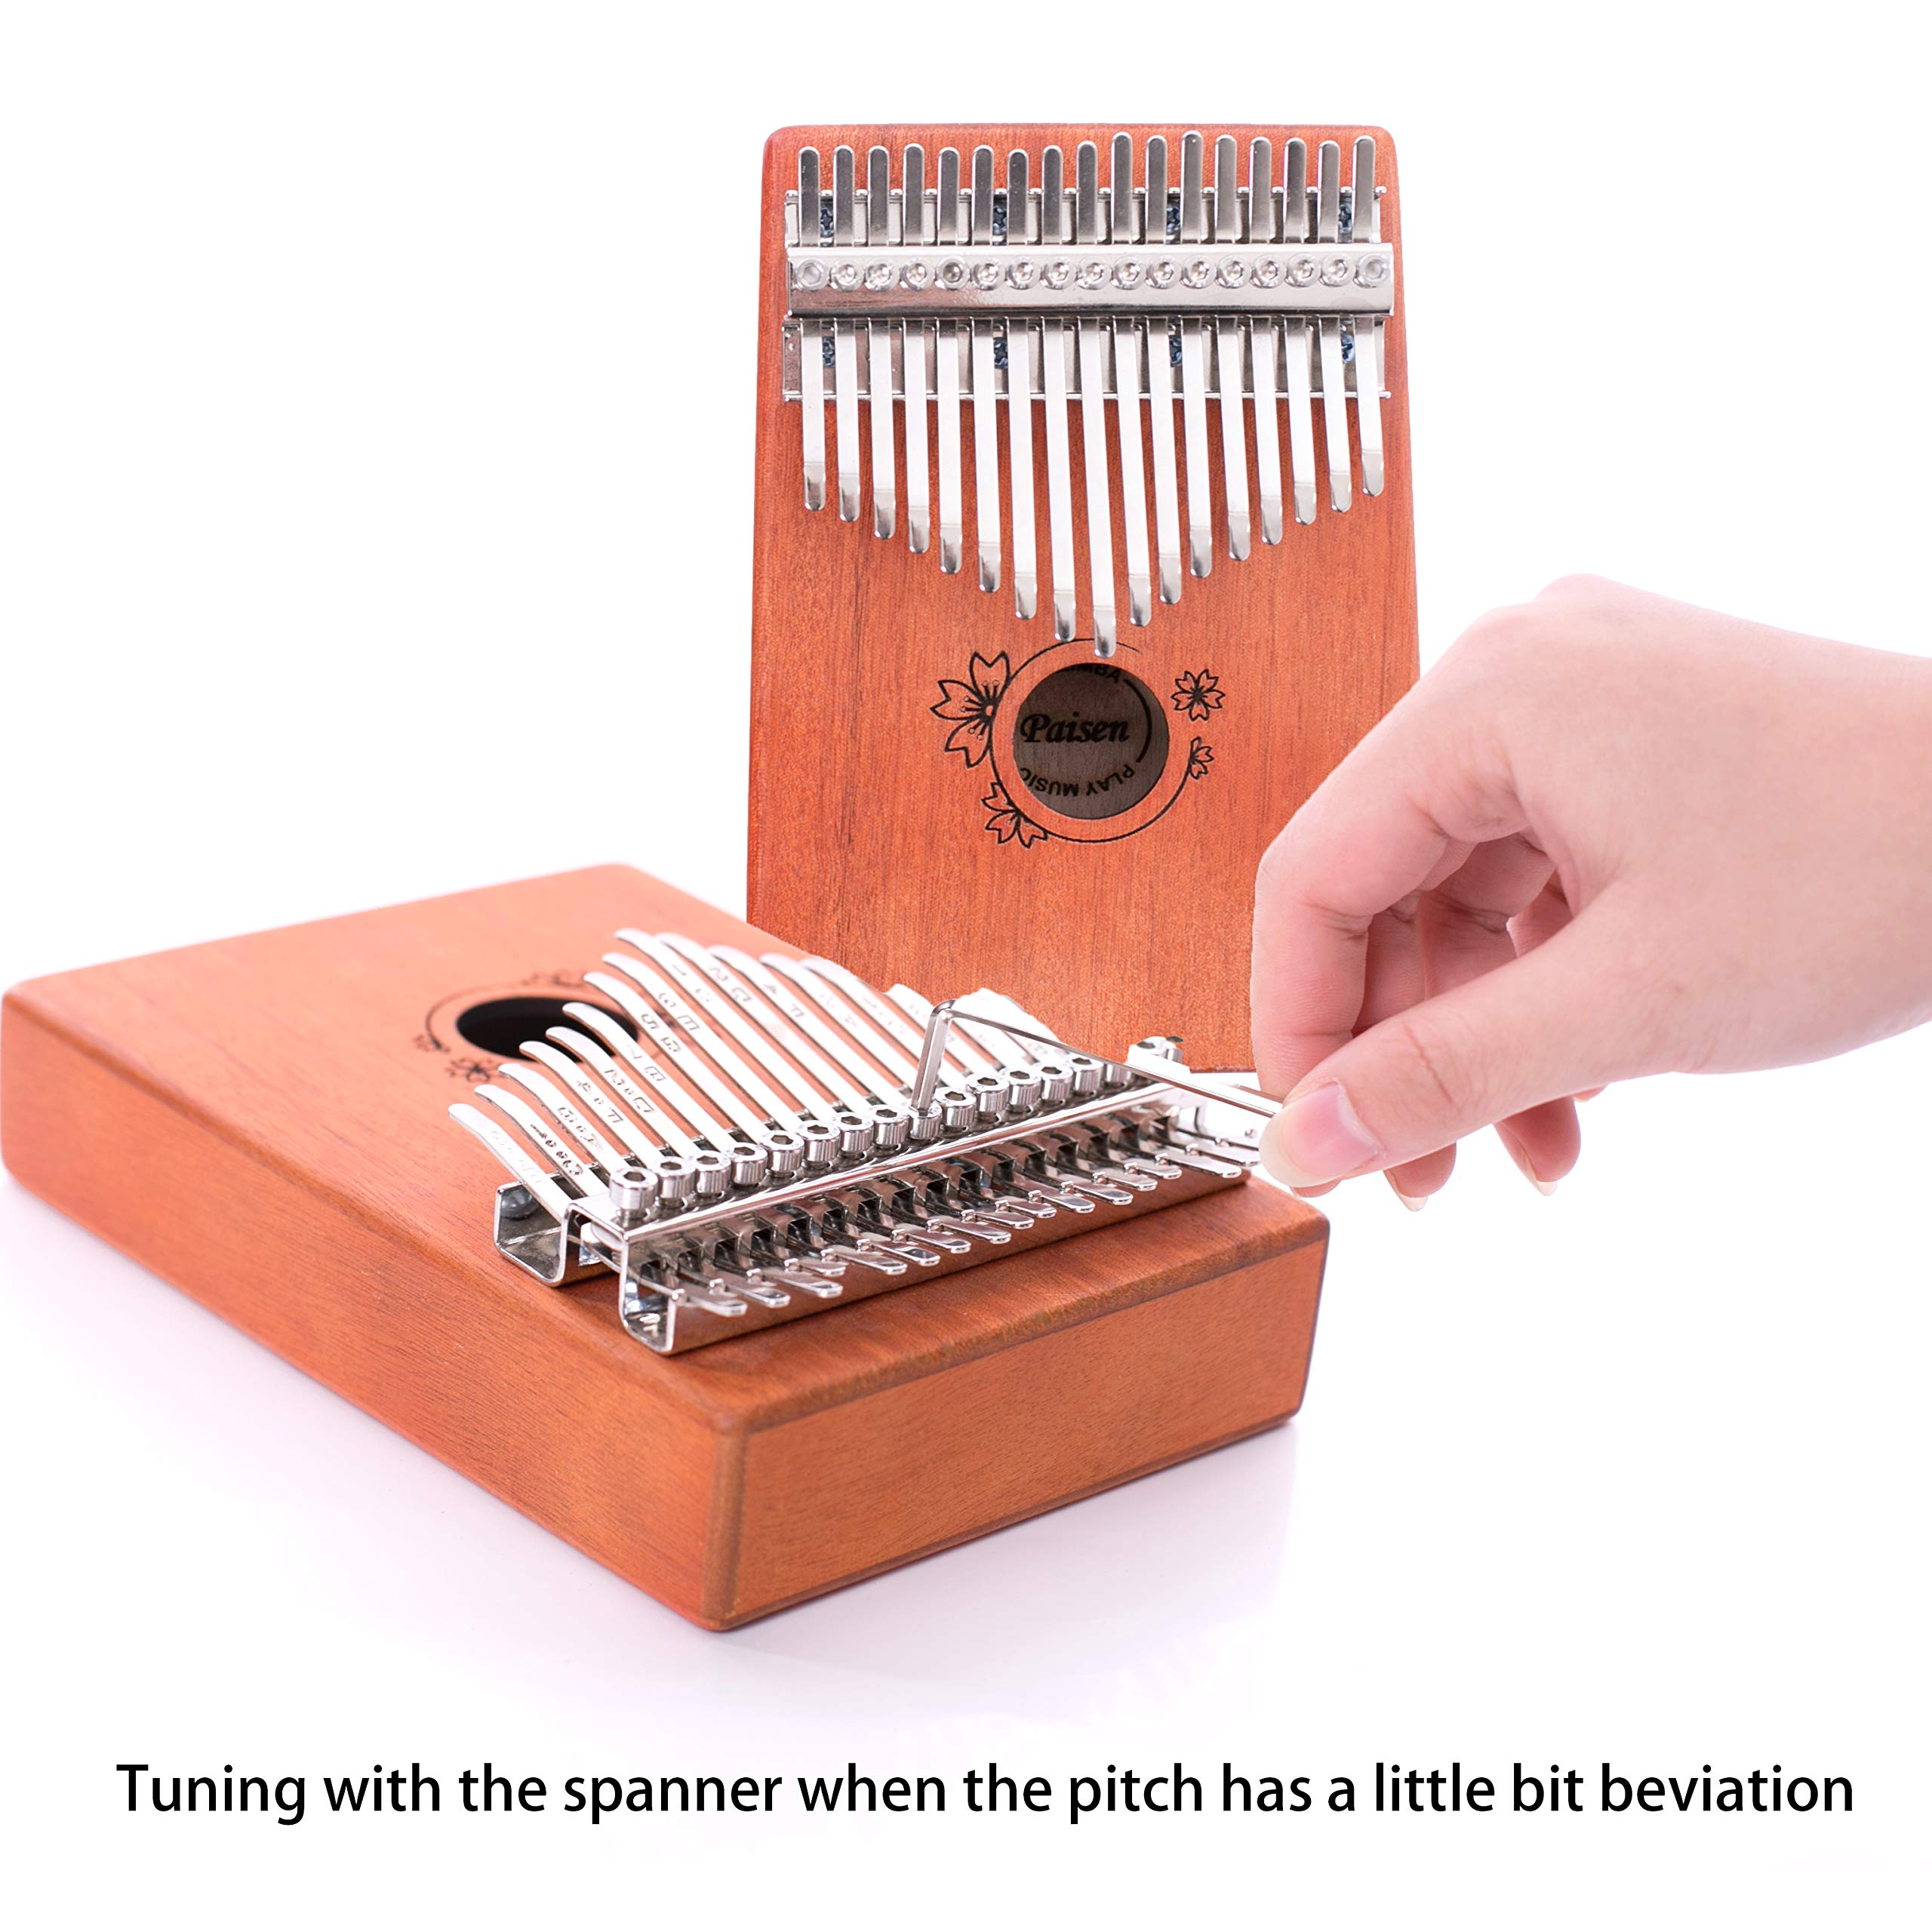 Paisen Kalimba 17 keys Thumb Piano with Study Instruction and Tune Hammer,Mahogany Wood Finger Piano with Portable Carrying Bag and Shoulder Strap for Kids Adult Beginners by Paisen (Image #5)